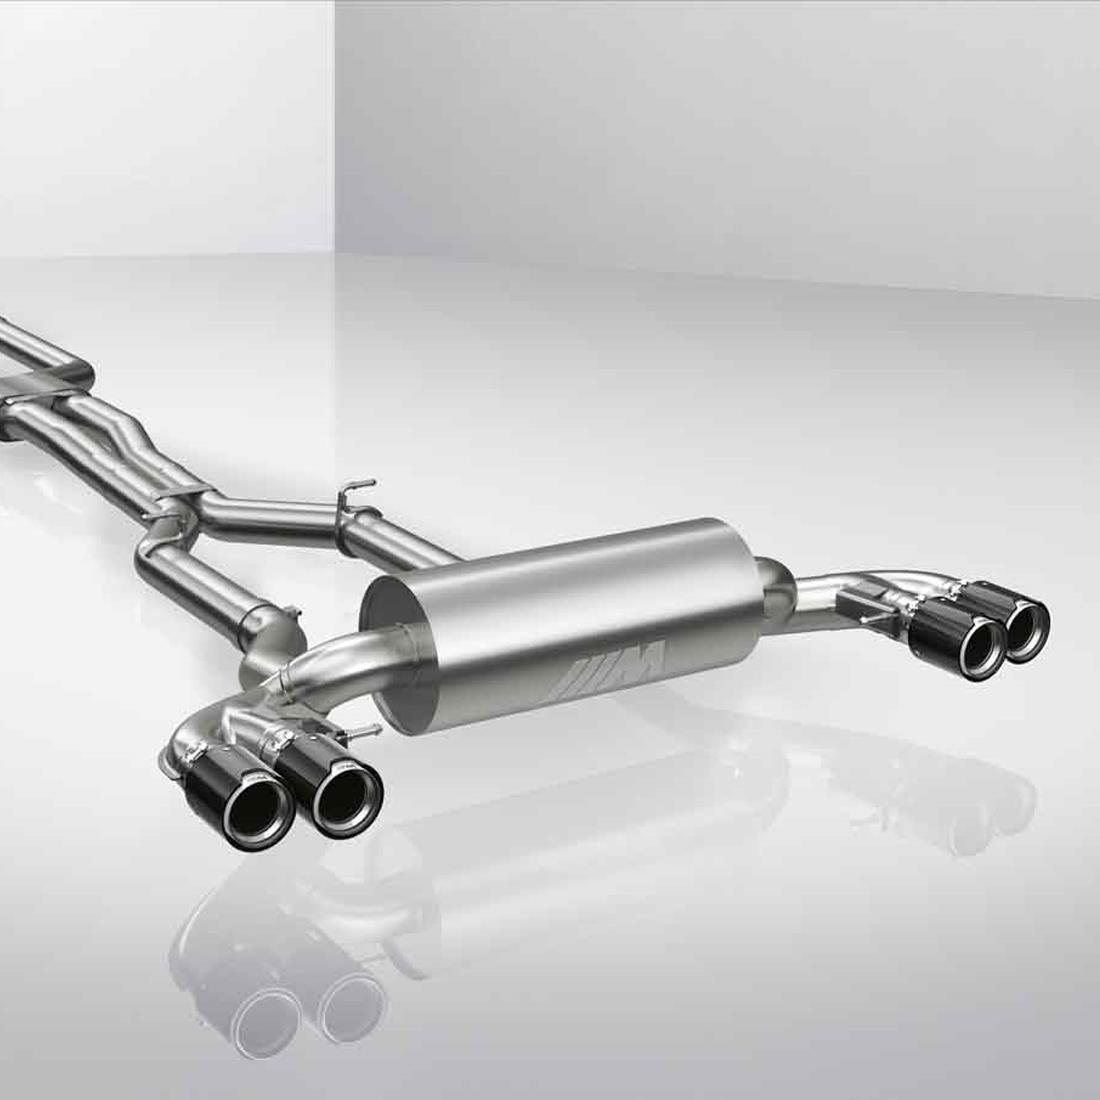 BMW M Performance Exhaust System - Titanium